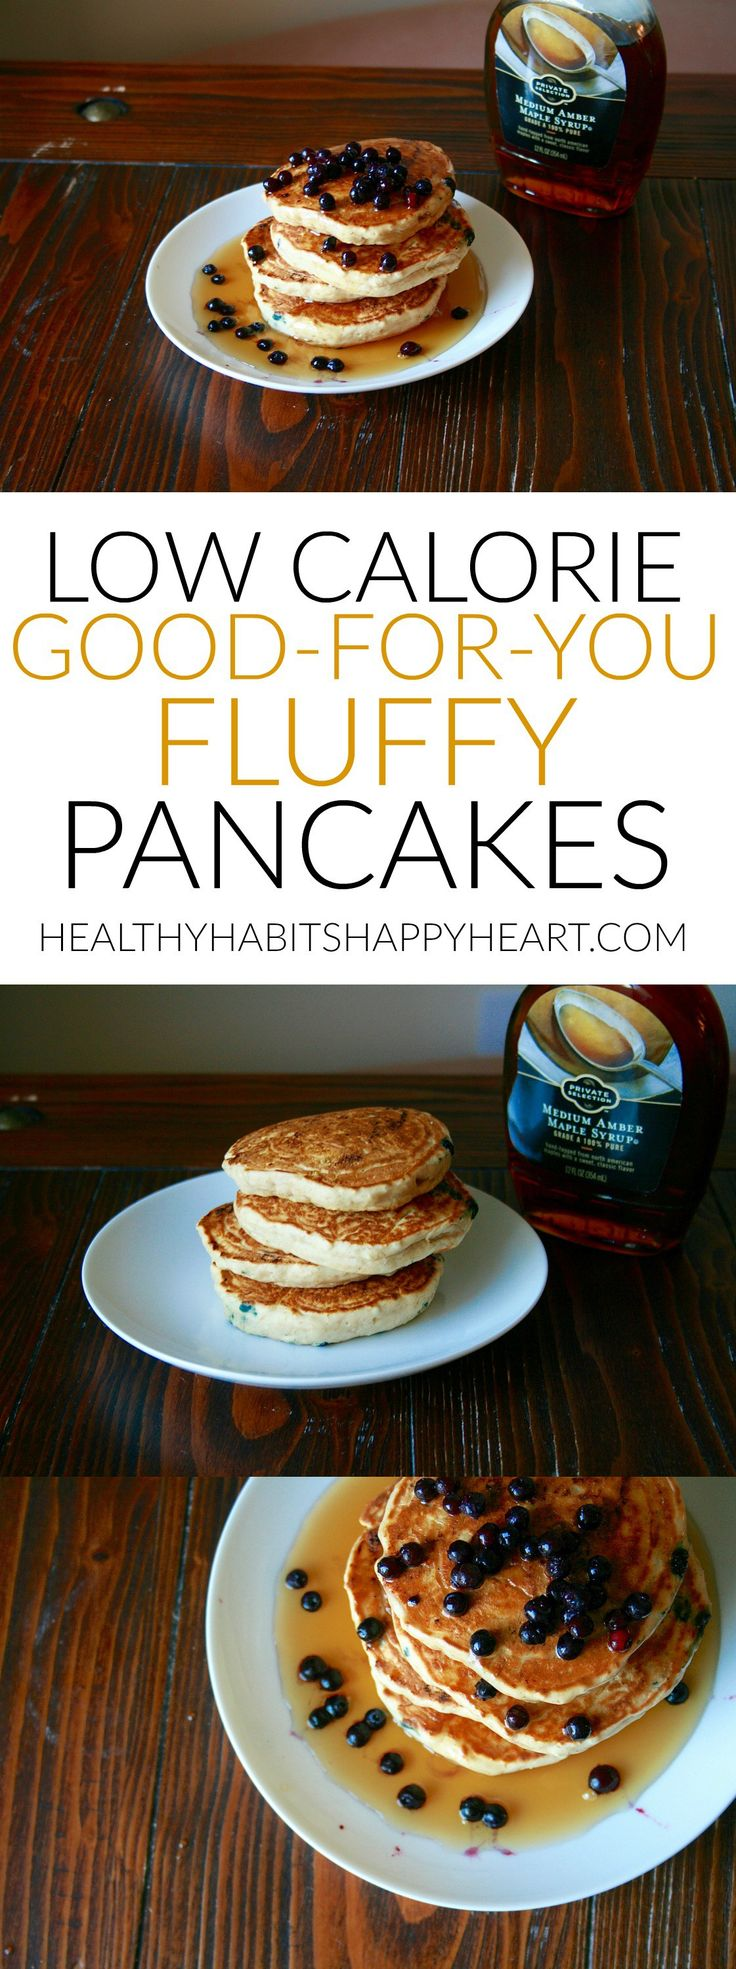 Low calorie, good-for-you fluffy pancakes. So easy to make! | healthyhabitshappyheart.com